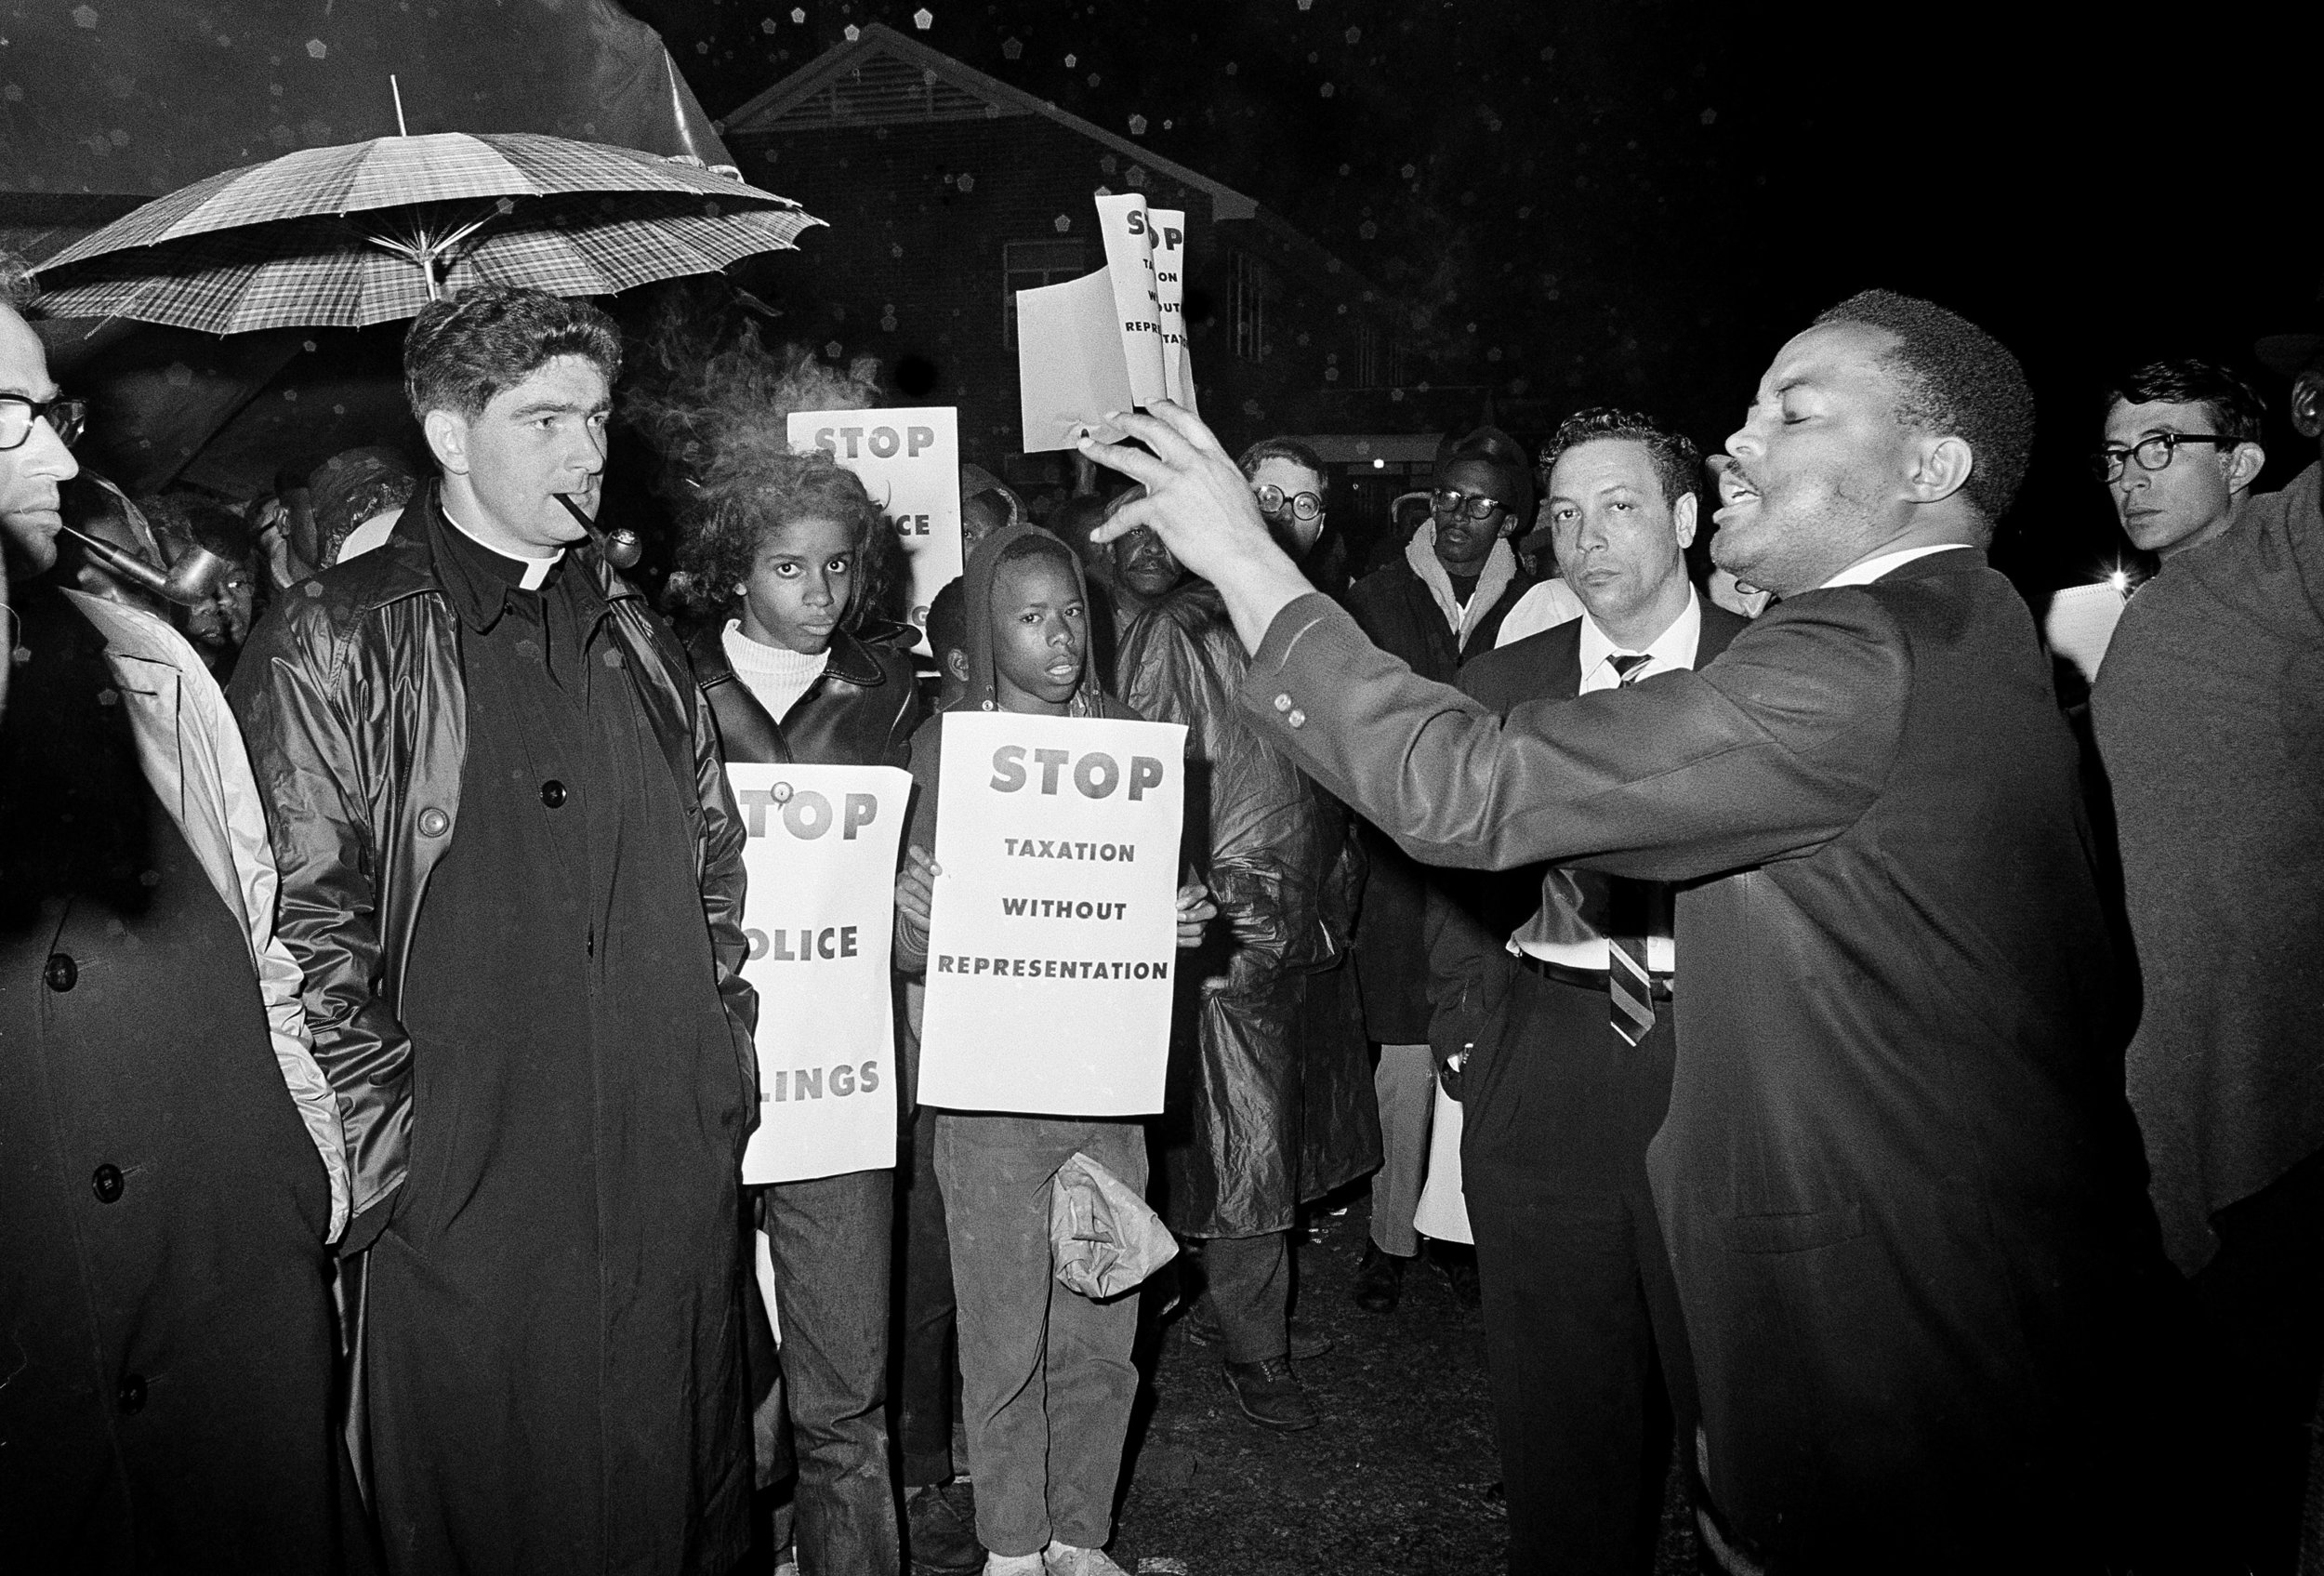 """PAGE 90: ON FEBRUARY 13, 1965, SCLC FIELD DIRECTOR HOSEA WILLIAMS INFORMS A CROWD OF DEMONSTRATORS IN SELMA, ALABAMA THAT """"COME HELL OR HIGH WATER,"""" THEY WILL MARCH TO THE DALLAS COUNTY COURTHOUSE TO VOTE (PERMISSION OF THE ASSOCIATED PRESS)."""